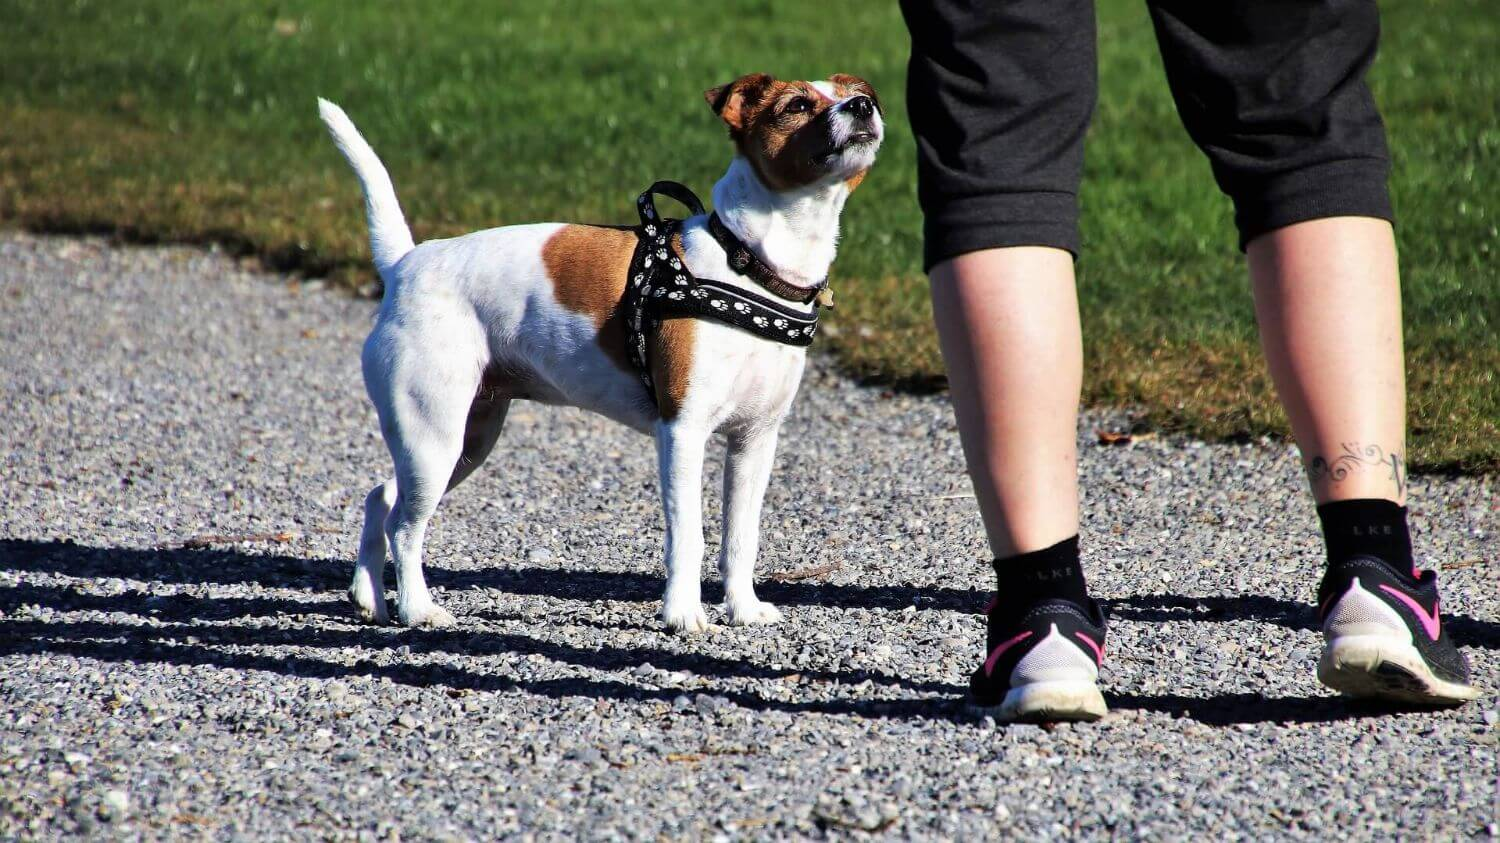 Sports activities to practice with your dog